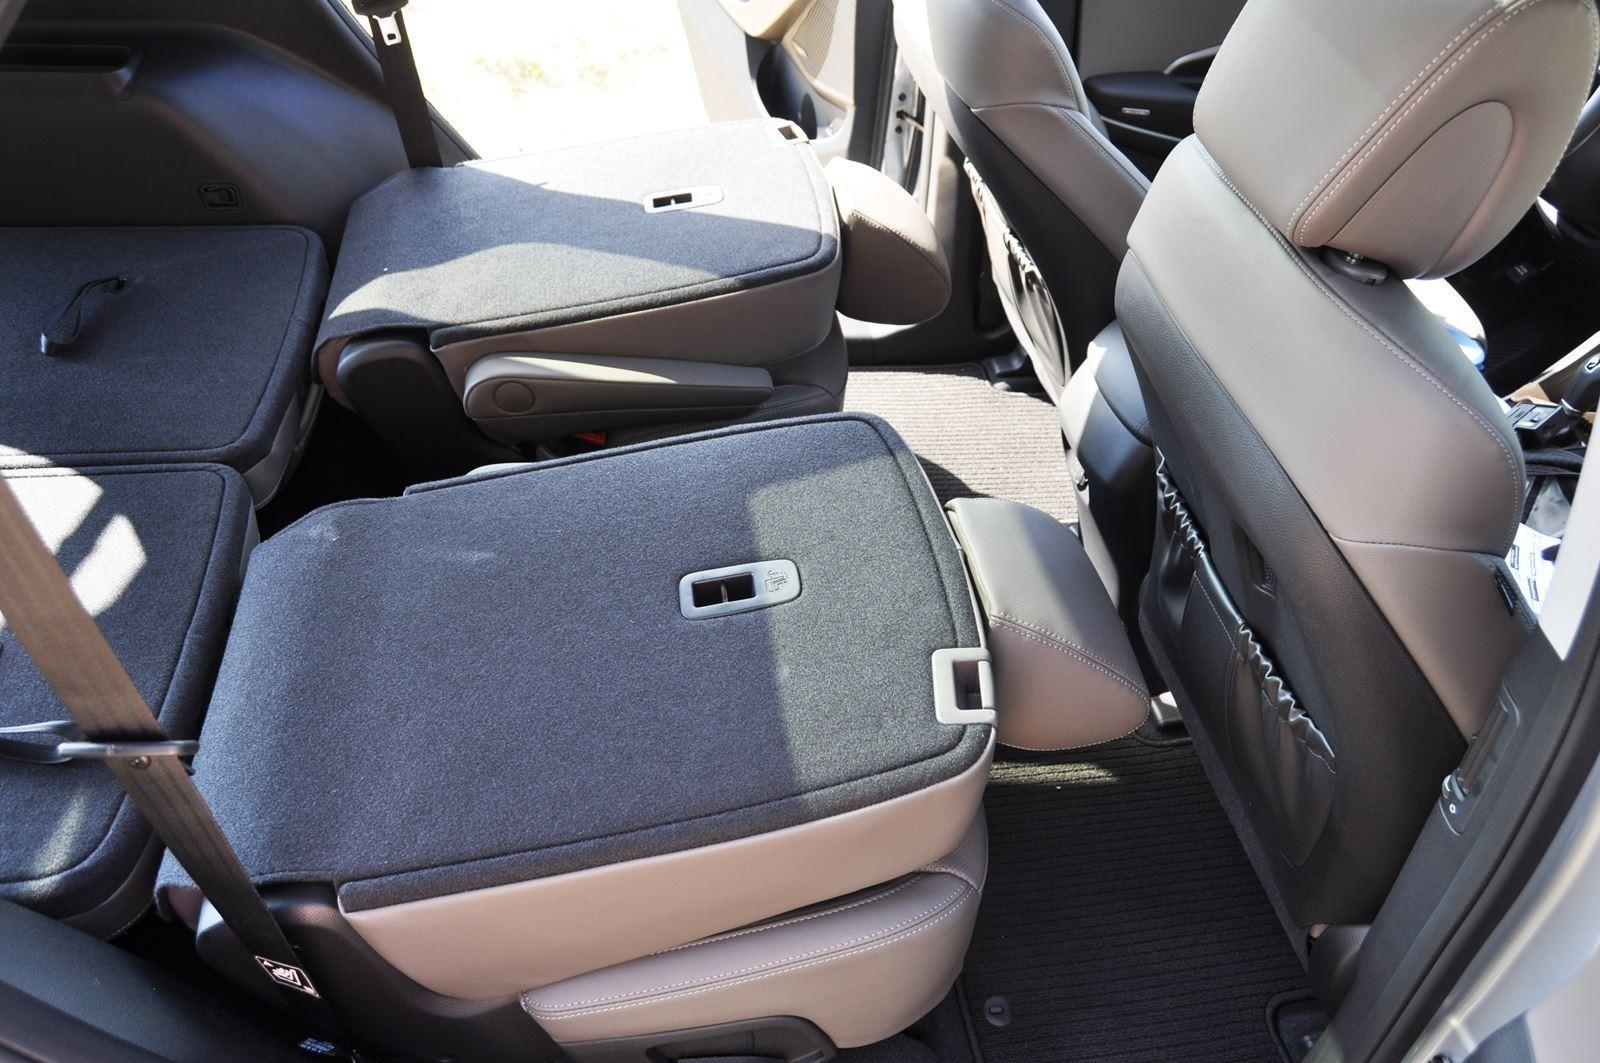 2015 Hyundai Santa Fe LWB Ultimate - Interior Photos 18